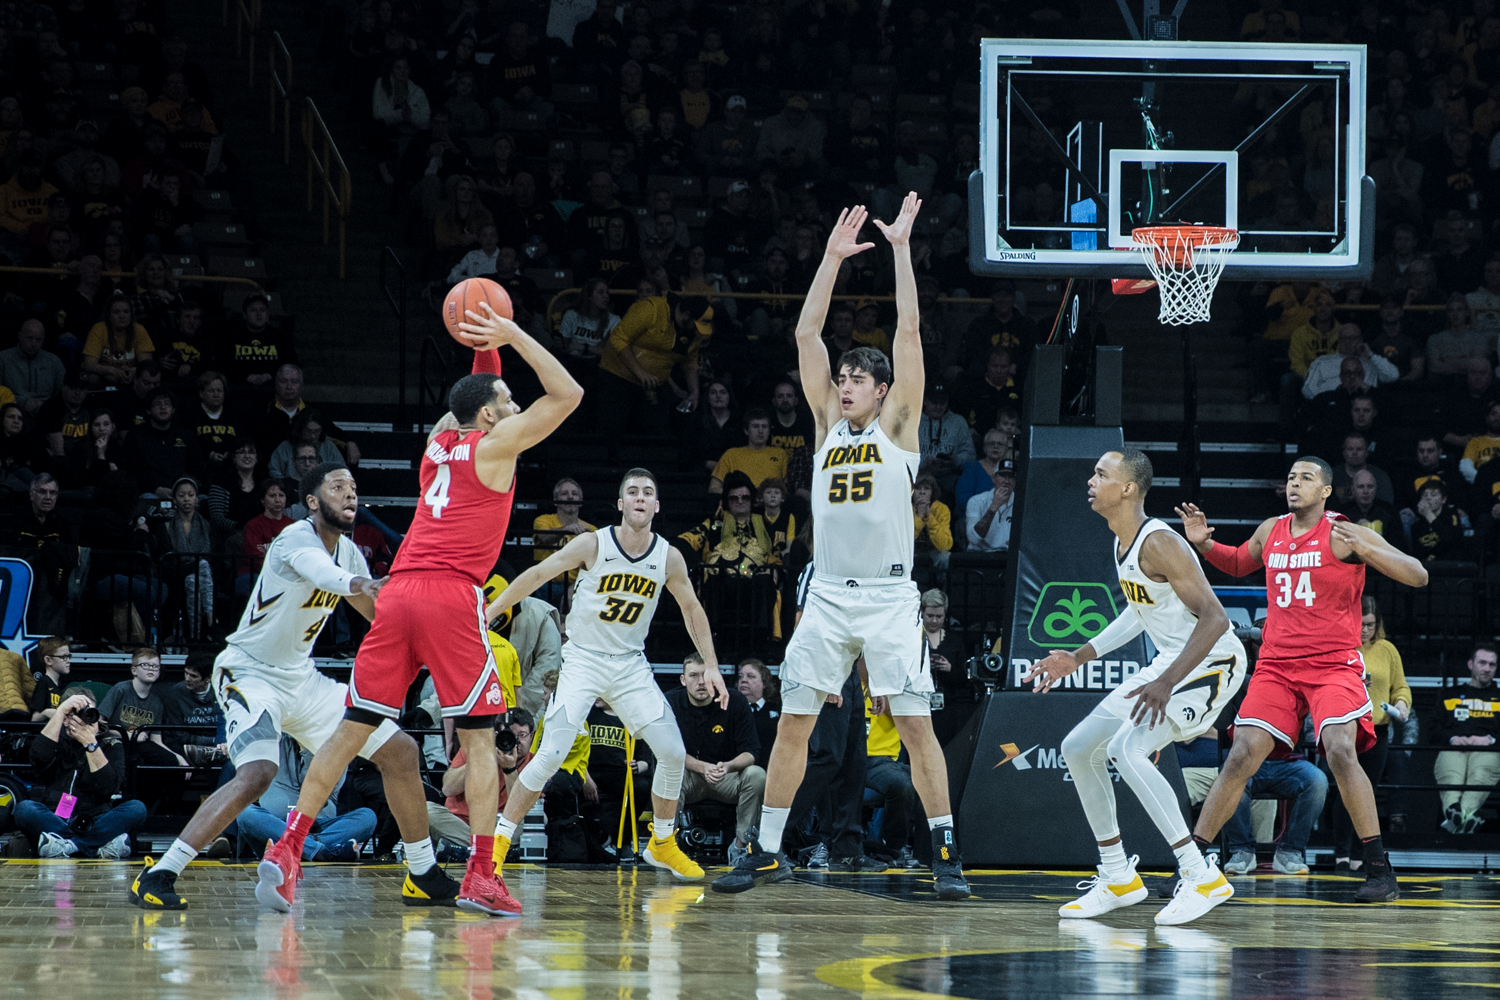 Iowa+forward+Luka+Garza+plays+defense+during+a+men%27s+basketball+matchup+between+Ohio+State+and+Iowa+at+Carver-Hawkeye+Arena+on+Saturday%2C+January+12%2C+2019.+The+Hawkeyes+defeated+the+Buckeyes%2C+72-62.